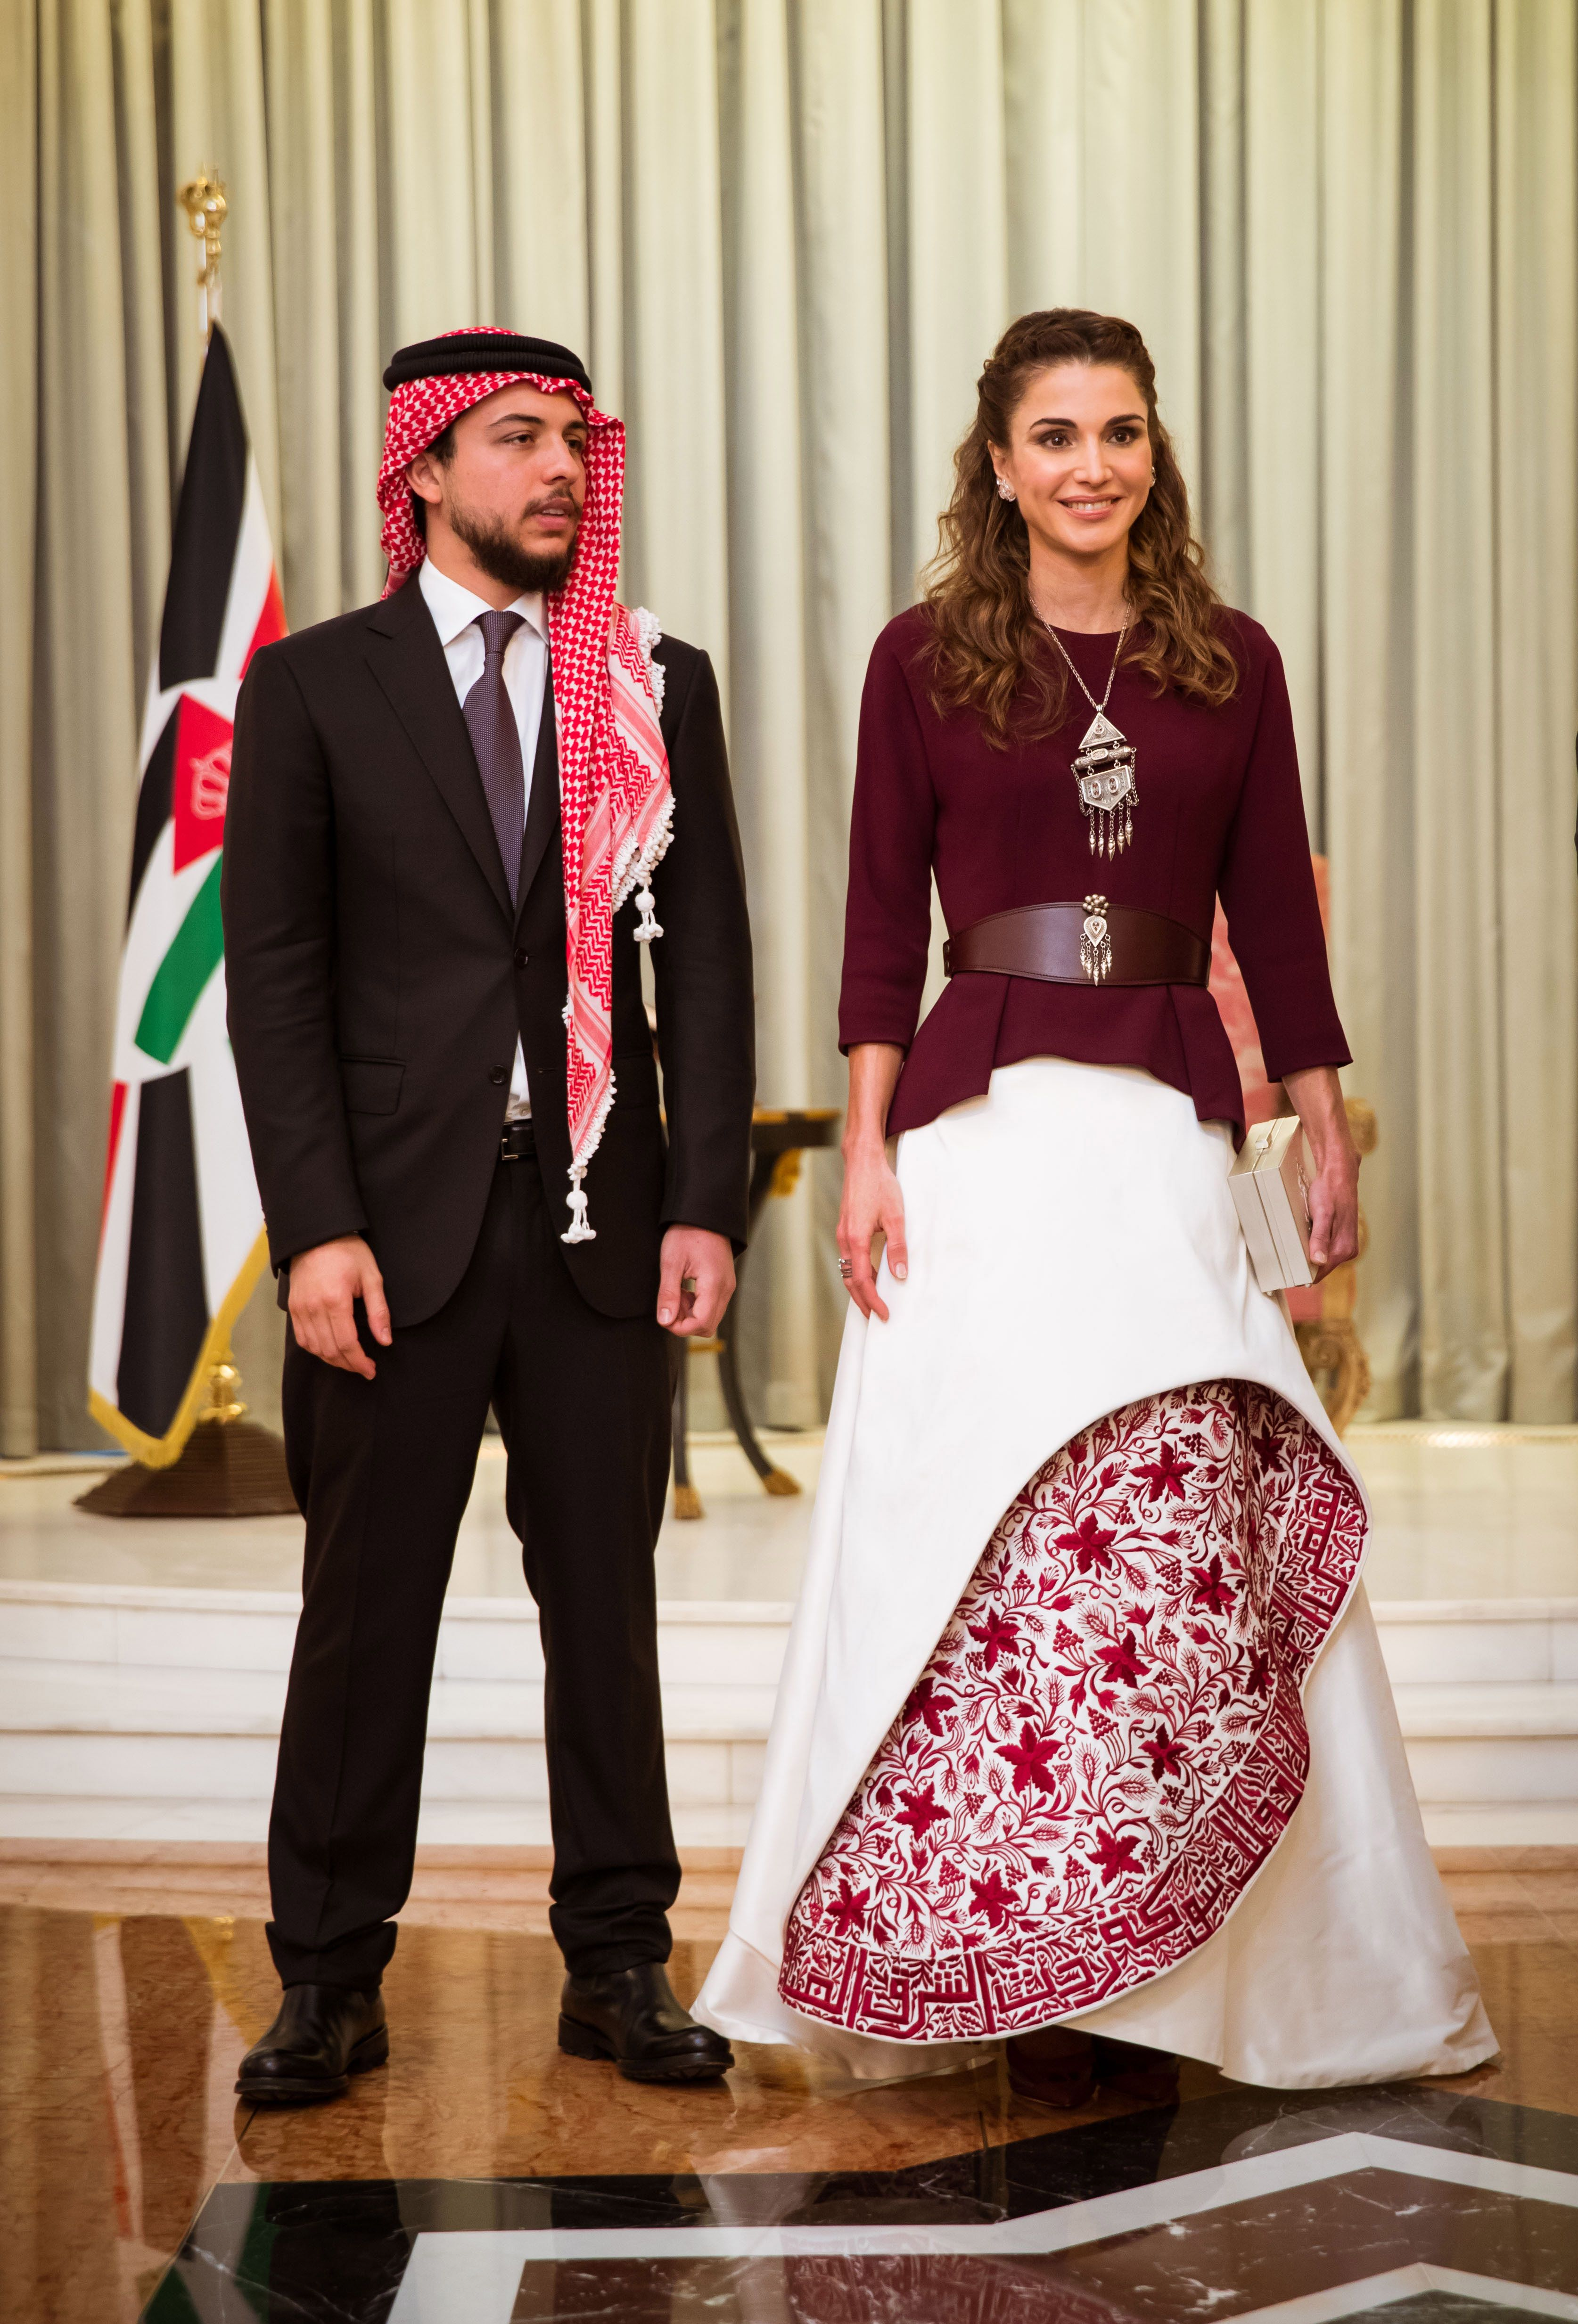 Queen Rania S Independence Day Dress Makes Us Reconsider Those Denim Shorts Queen Rania Fashion Day Dresses [ 4932 x 3348 Pixel ]